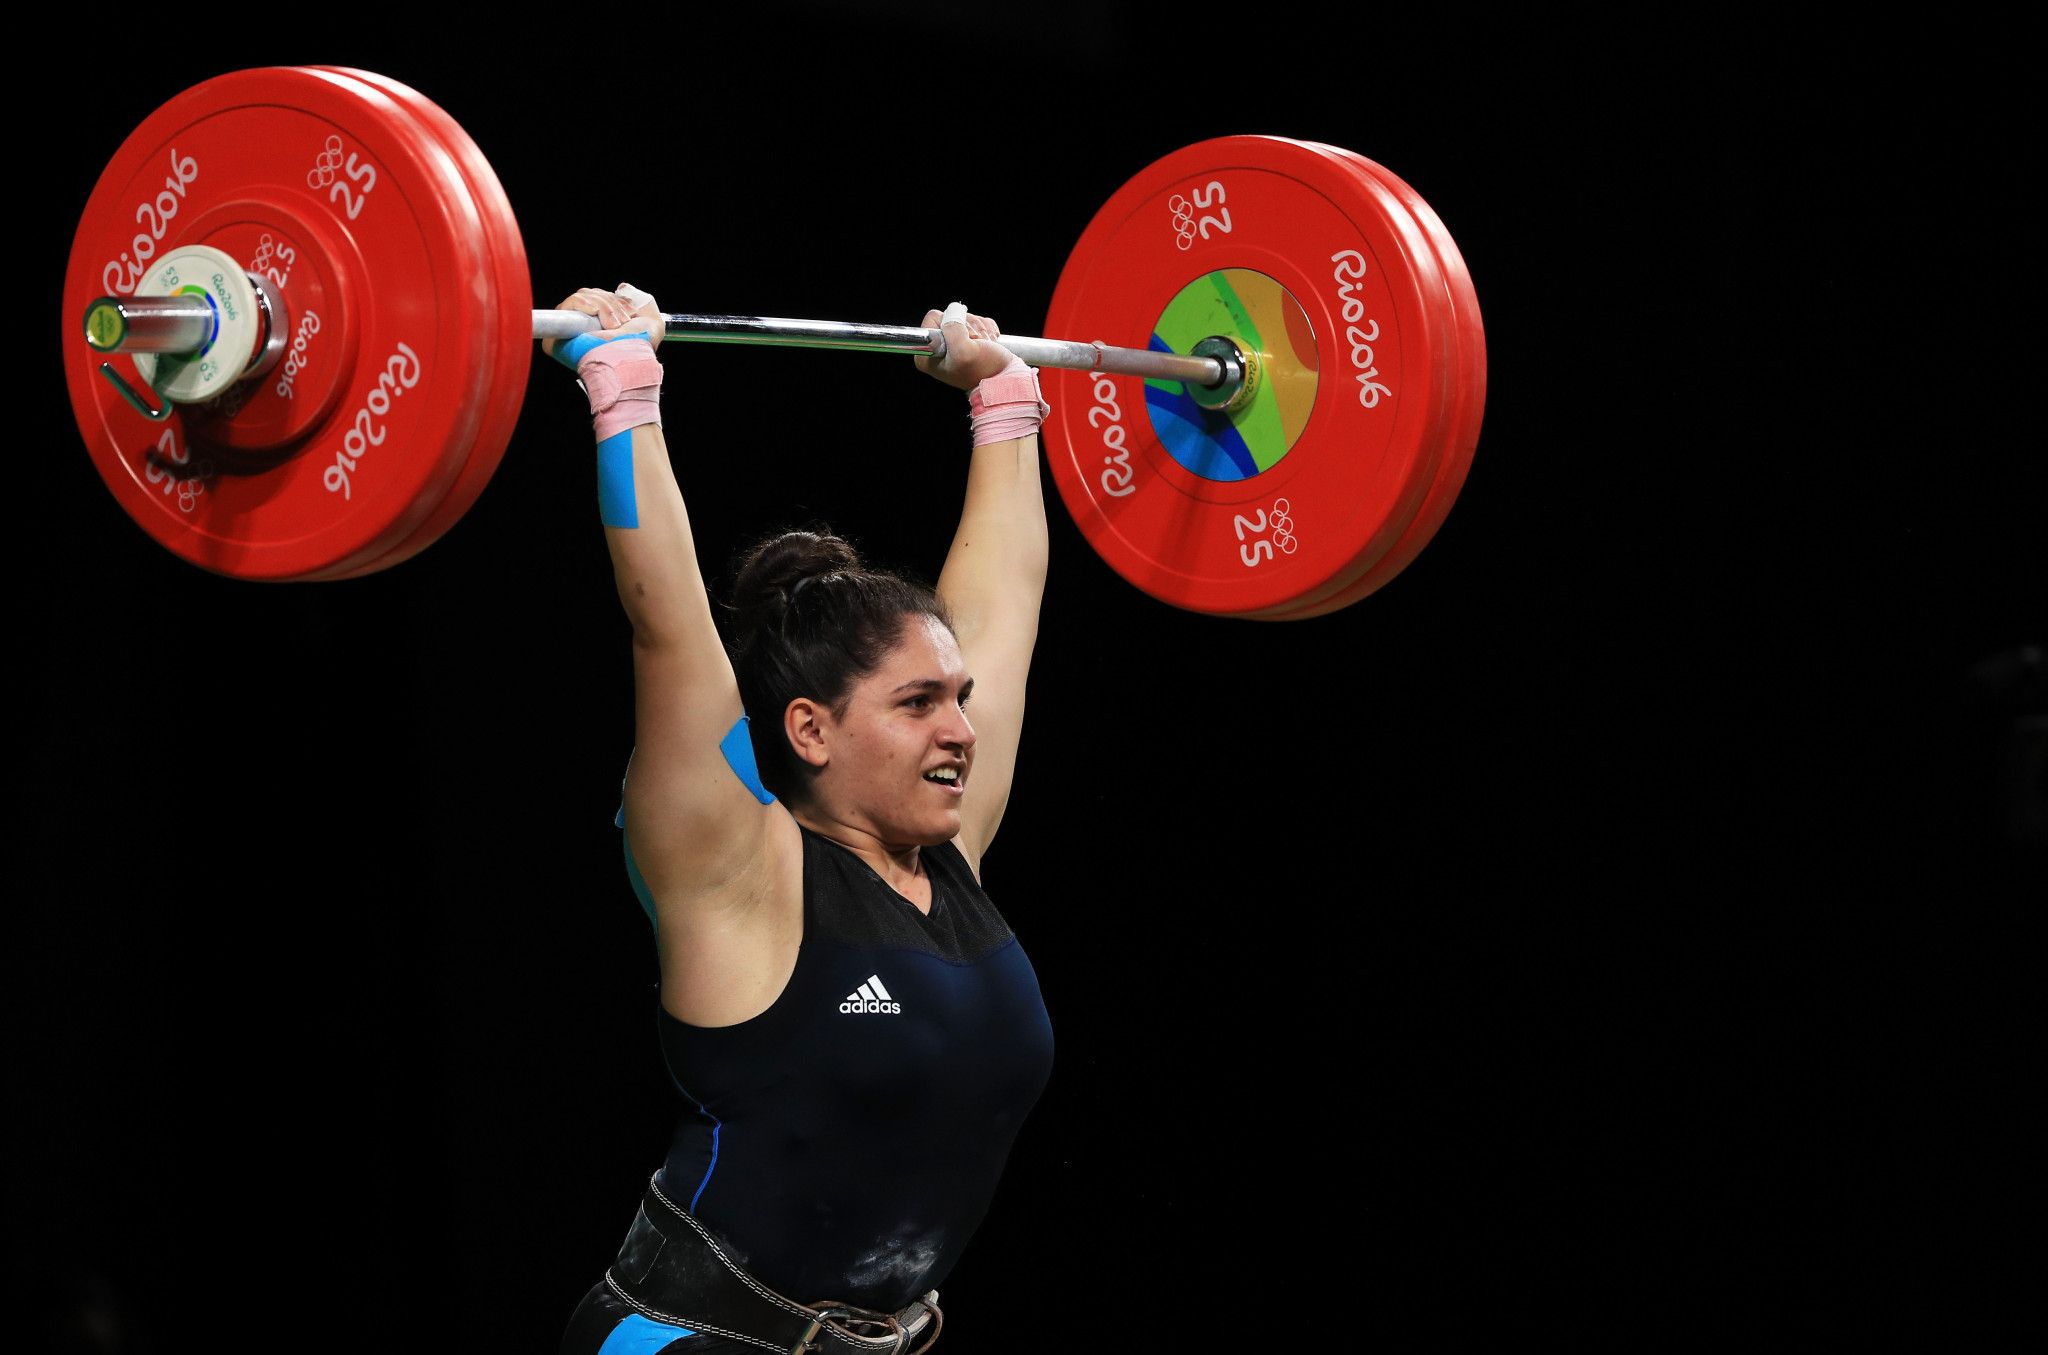 The IWF has also announced a failure against Sona Poghosyan ©Getty Images